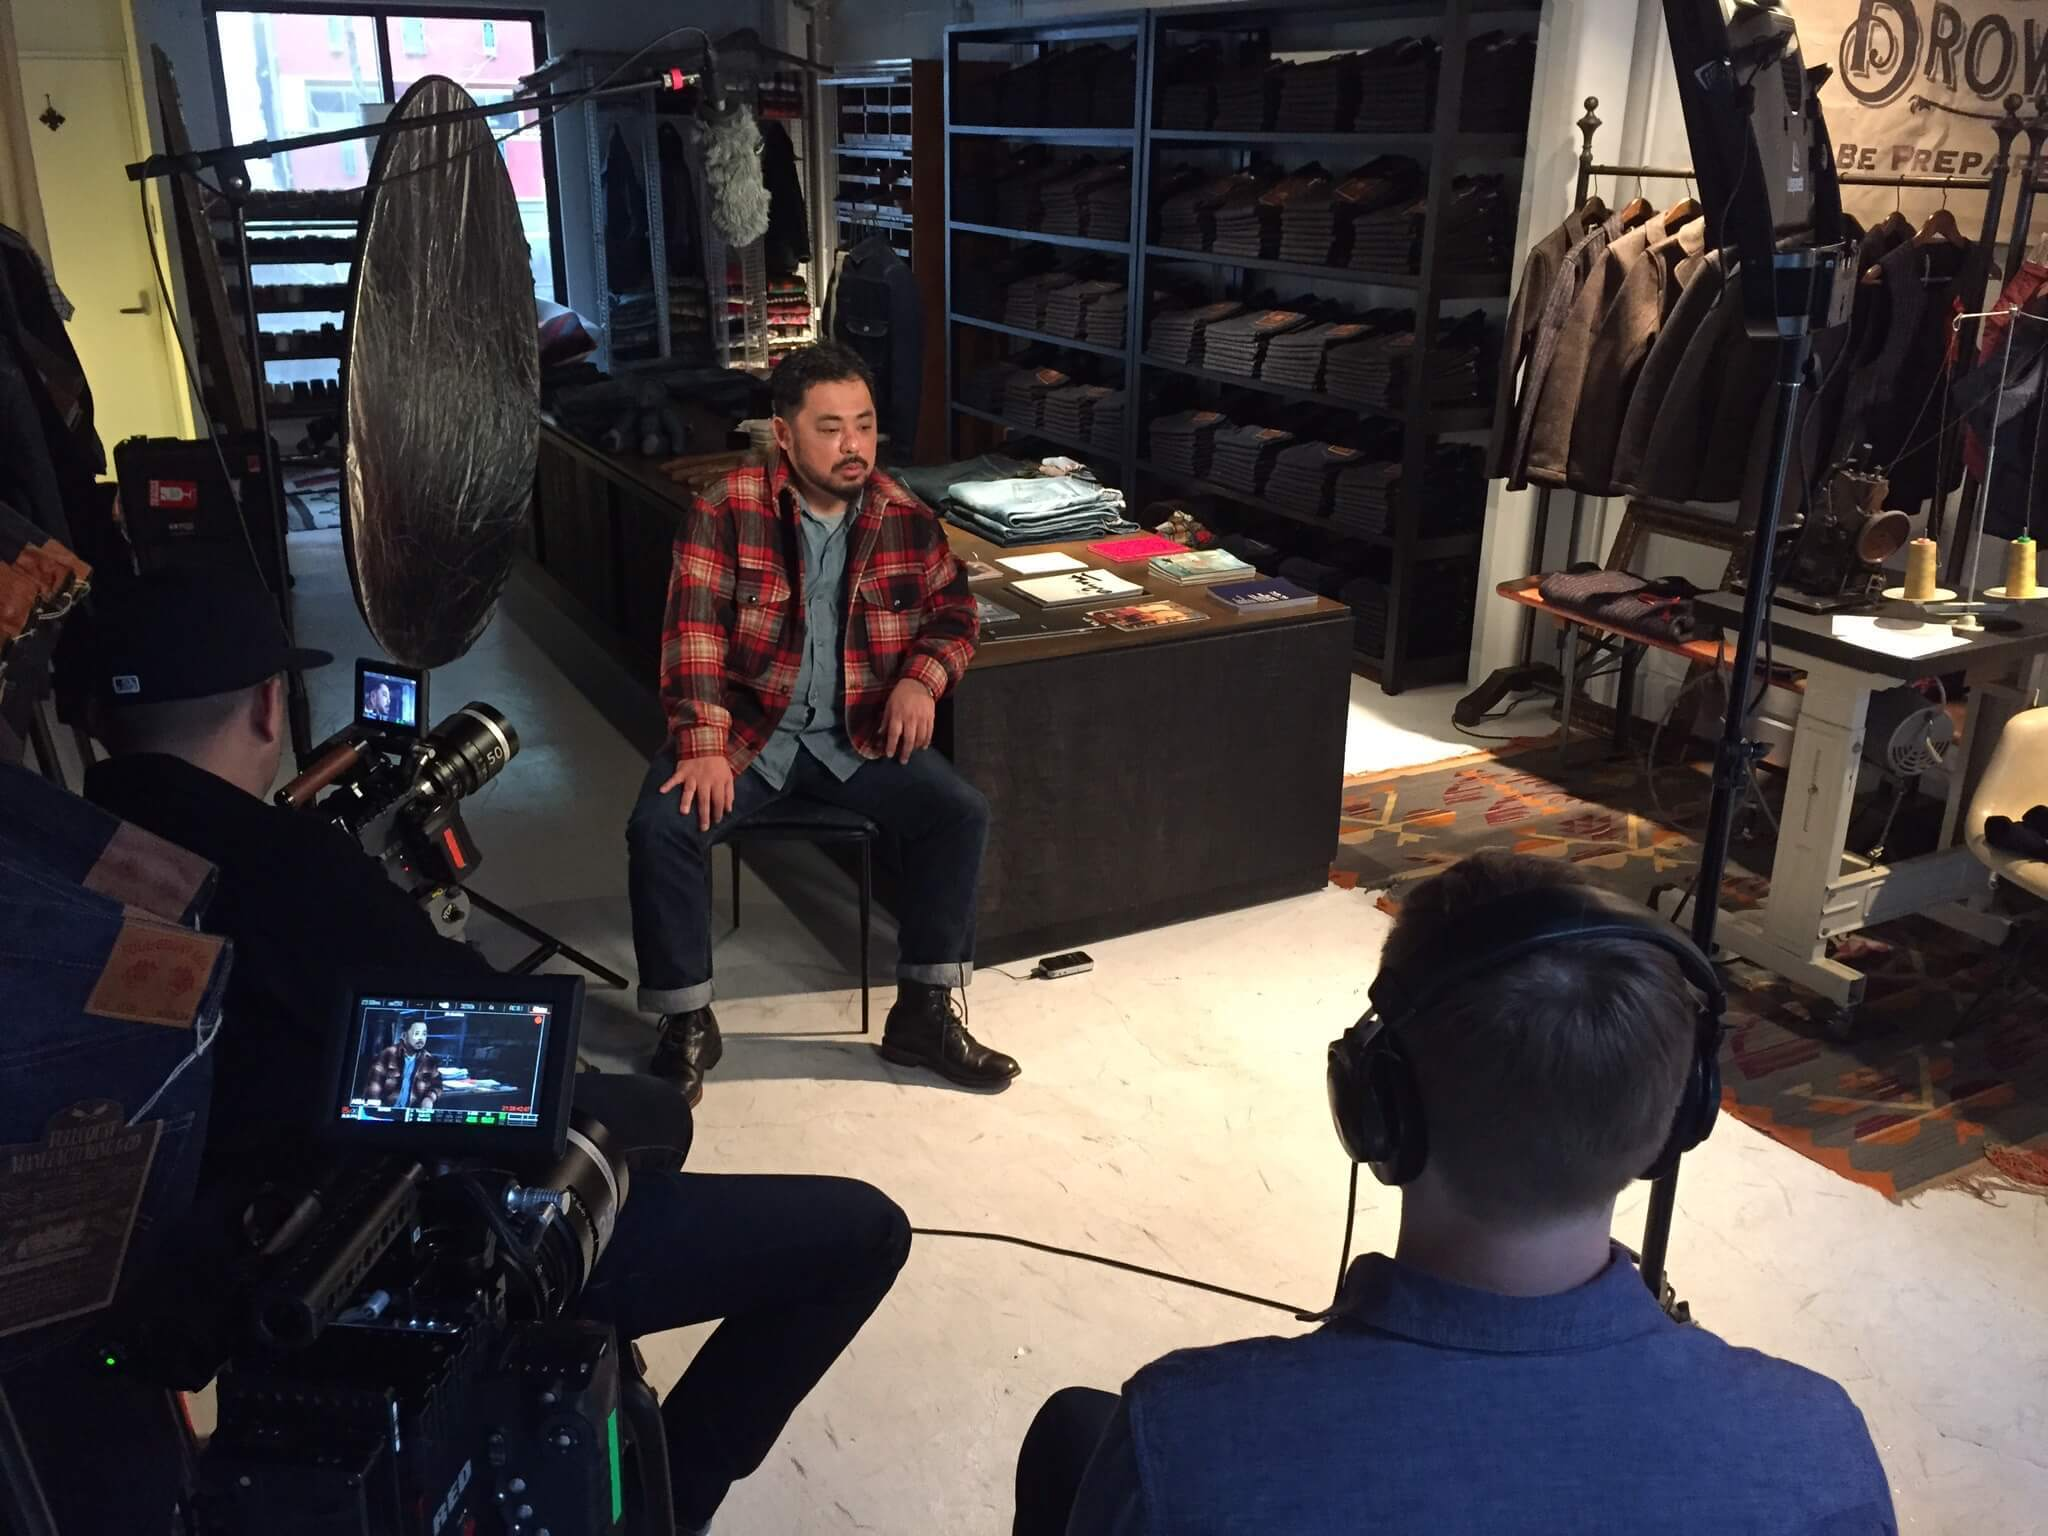 Founder of Fullcount, Mikiharu Tsujita, being interviewed for Weaving Shibusa